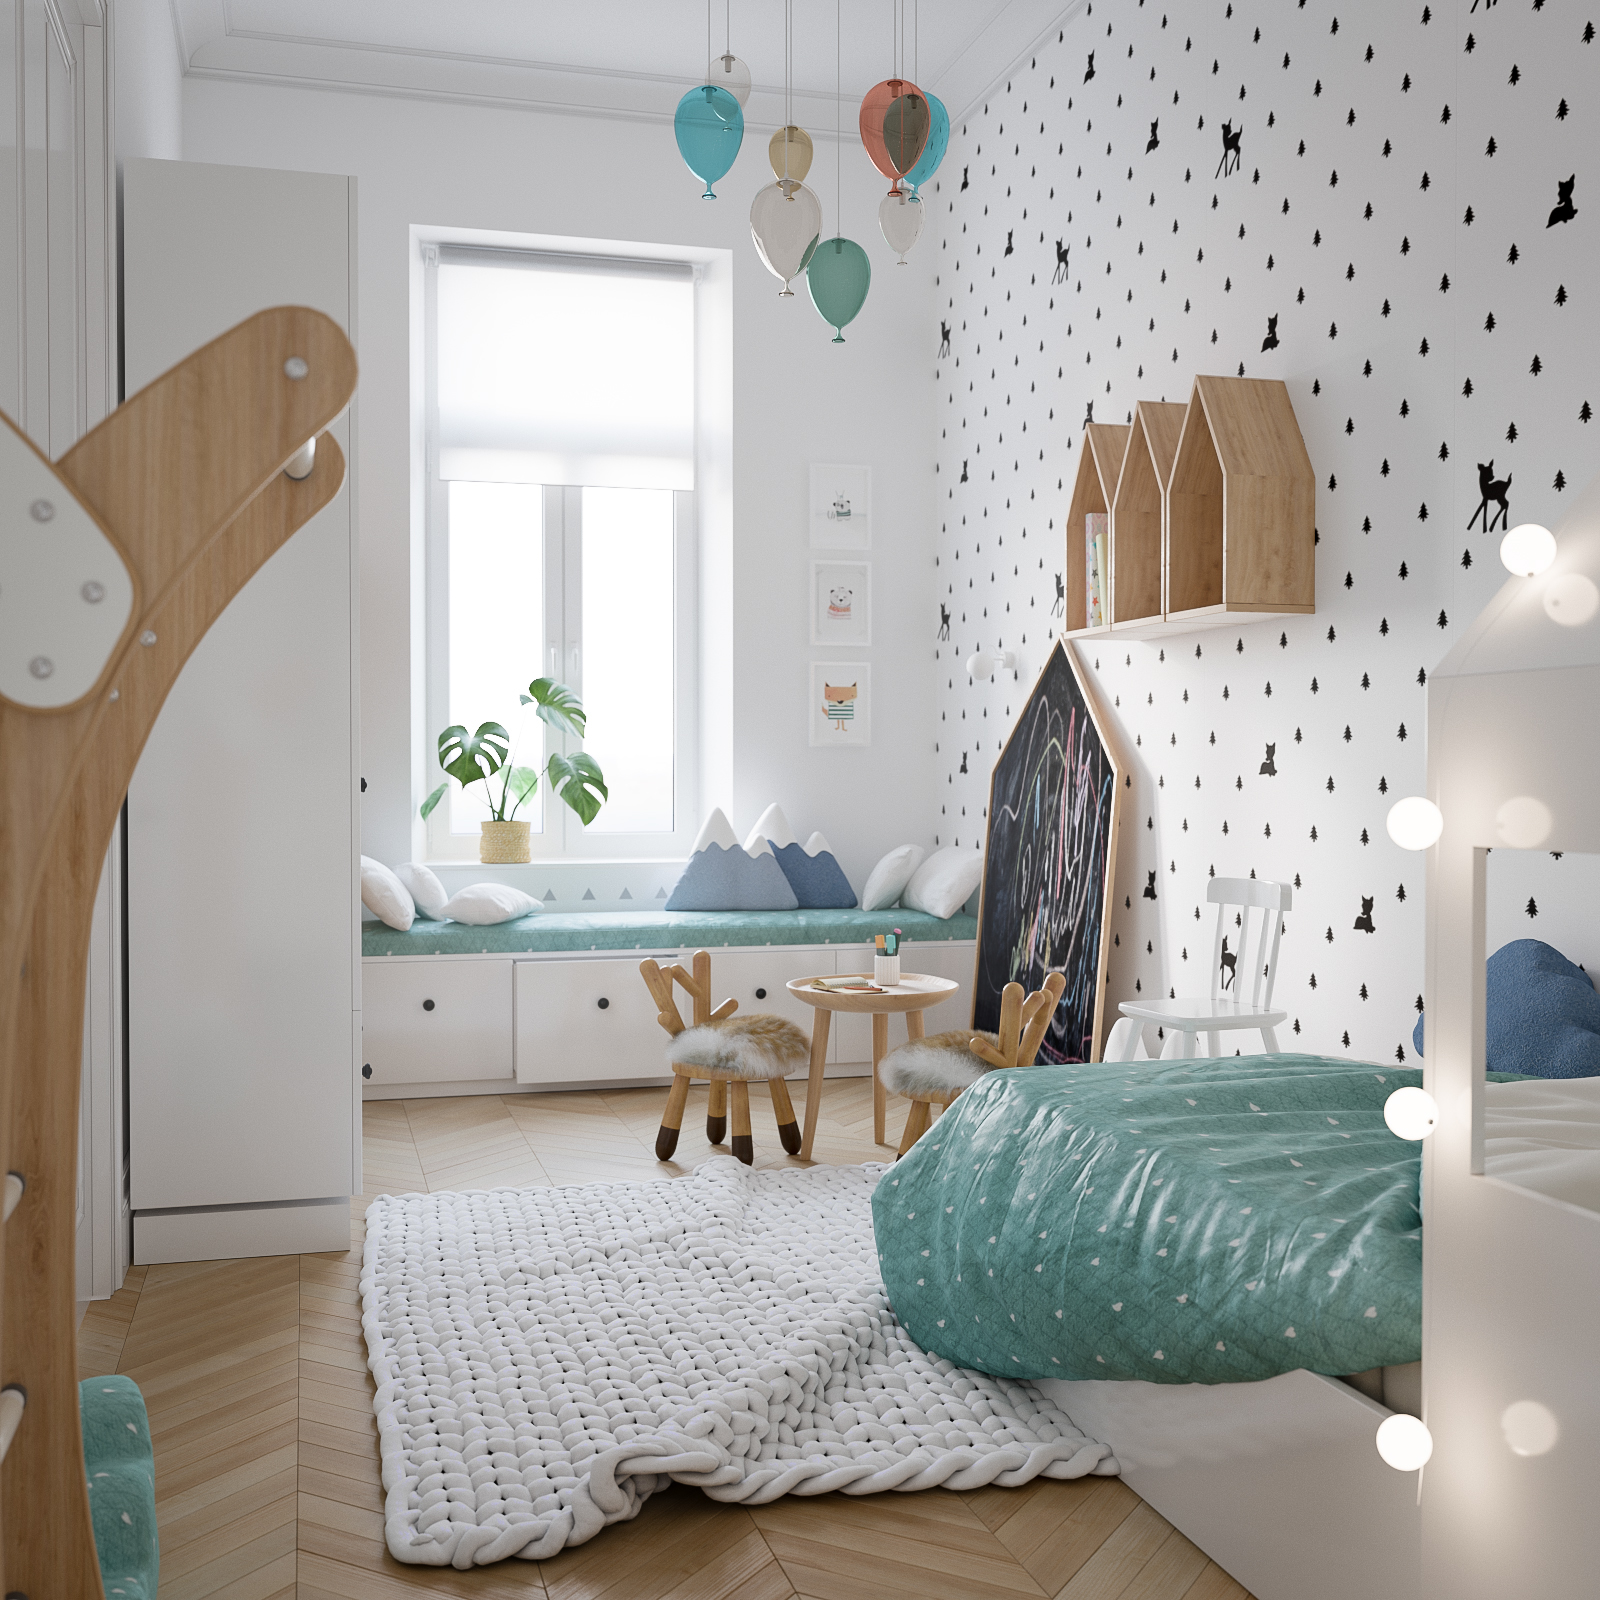 Colorful Kids Rooms: Modern Scandinavian Style Home Design For Young Families